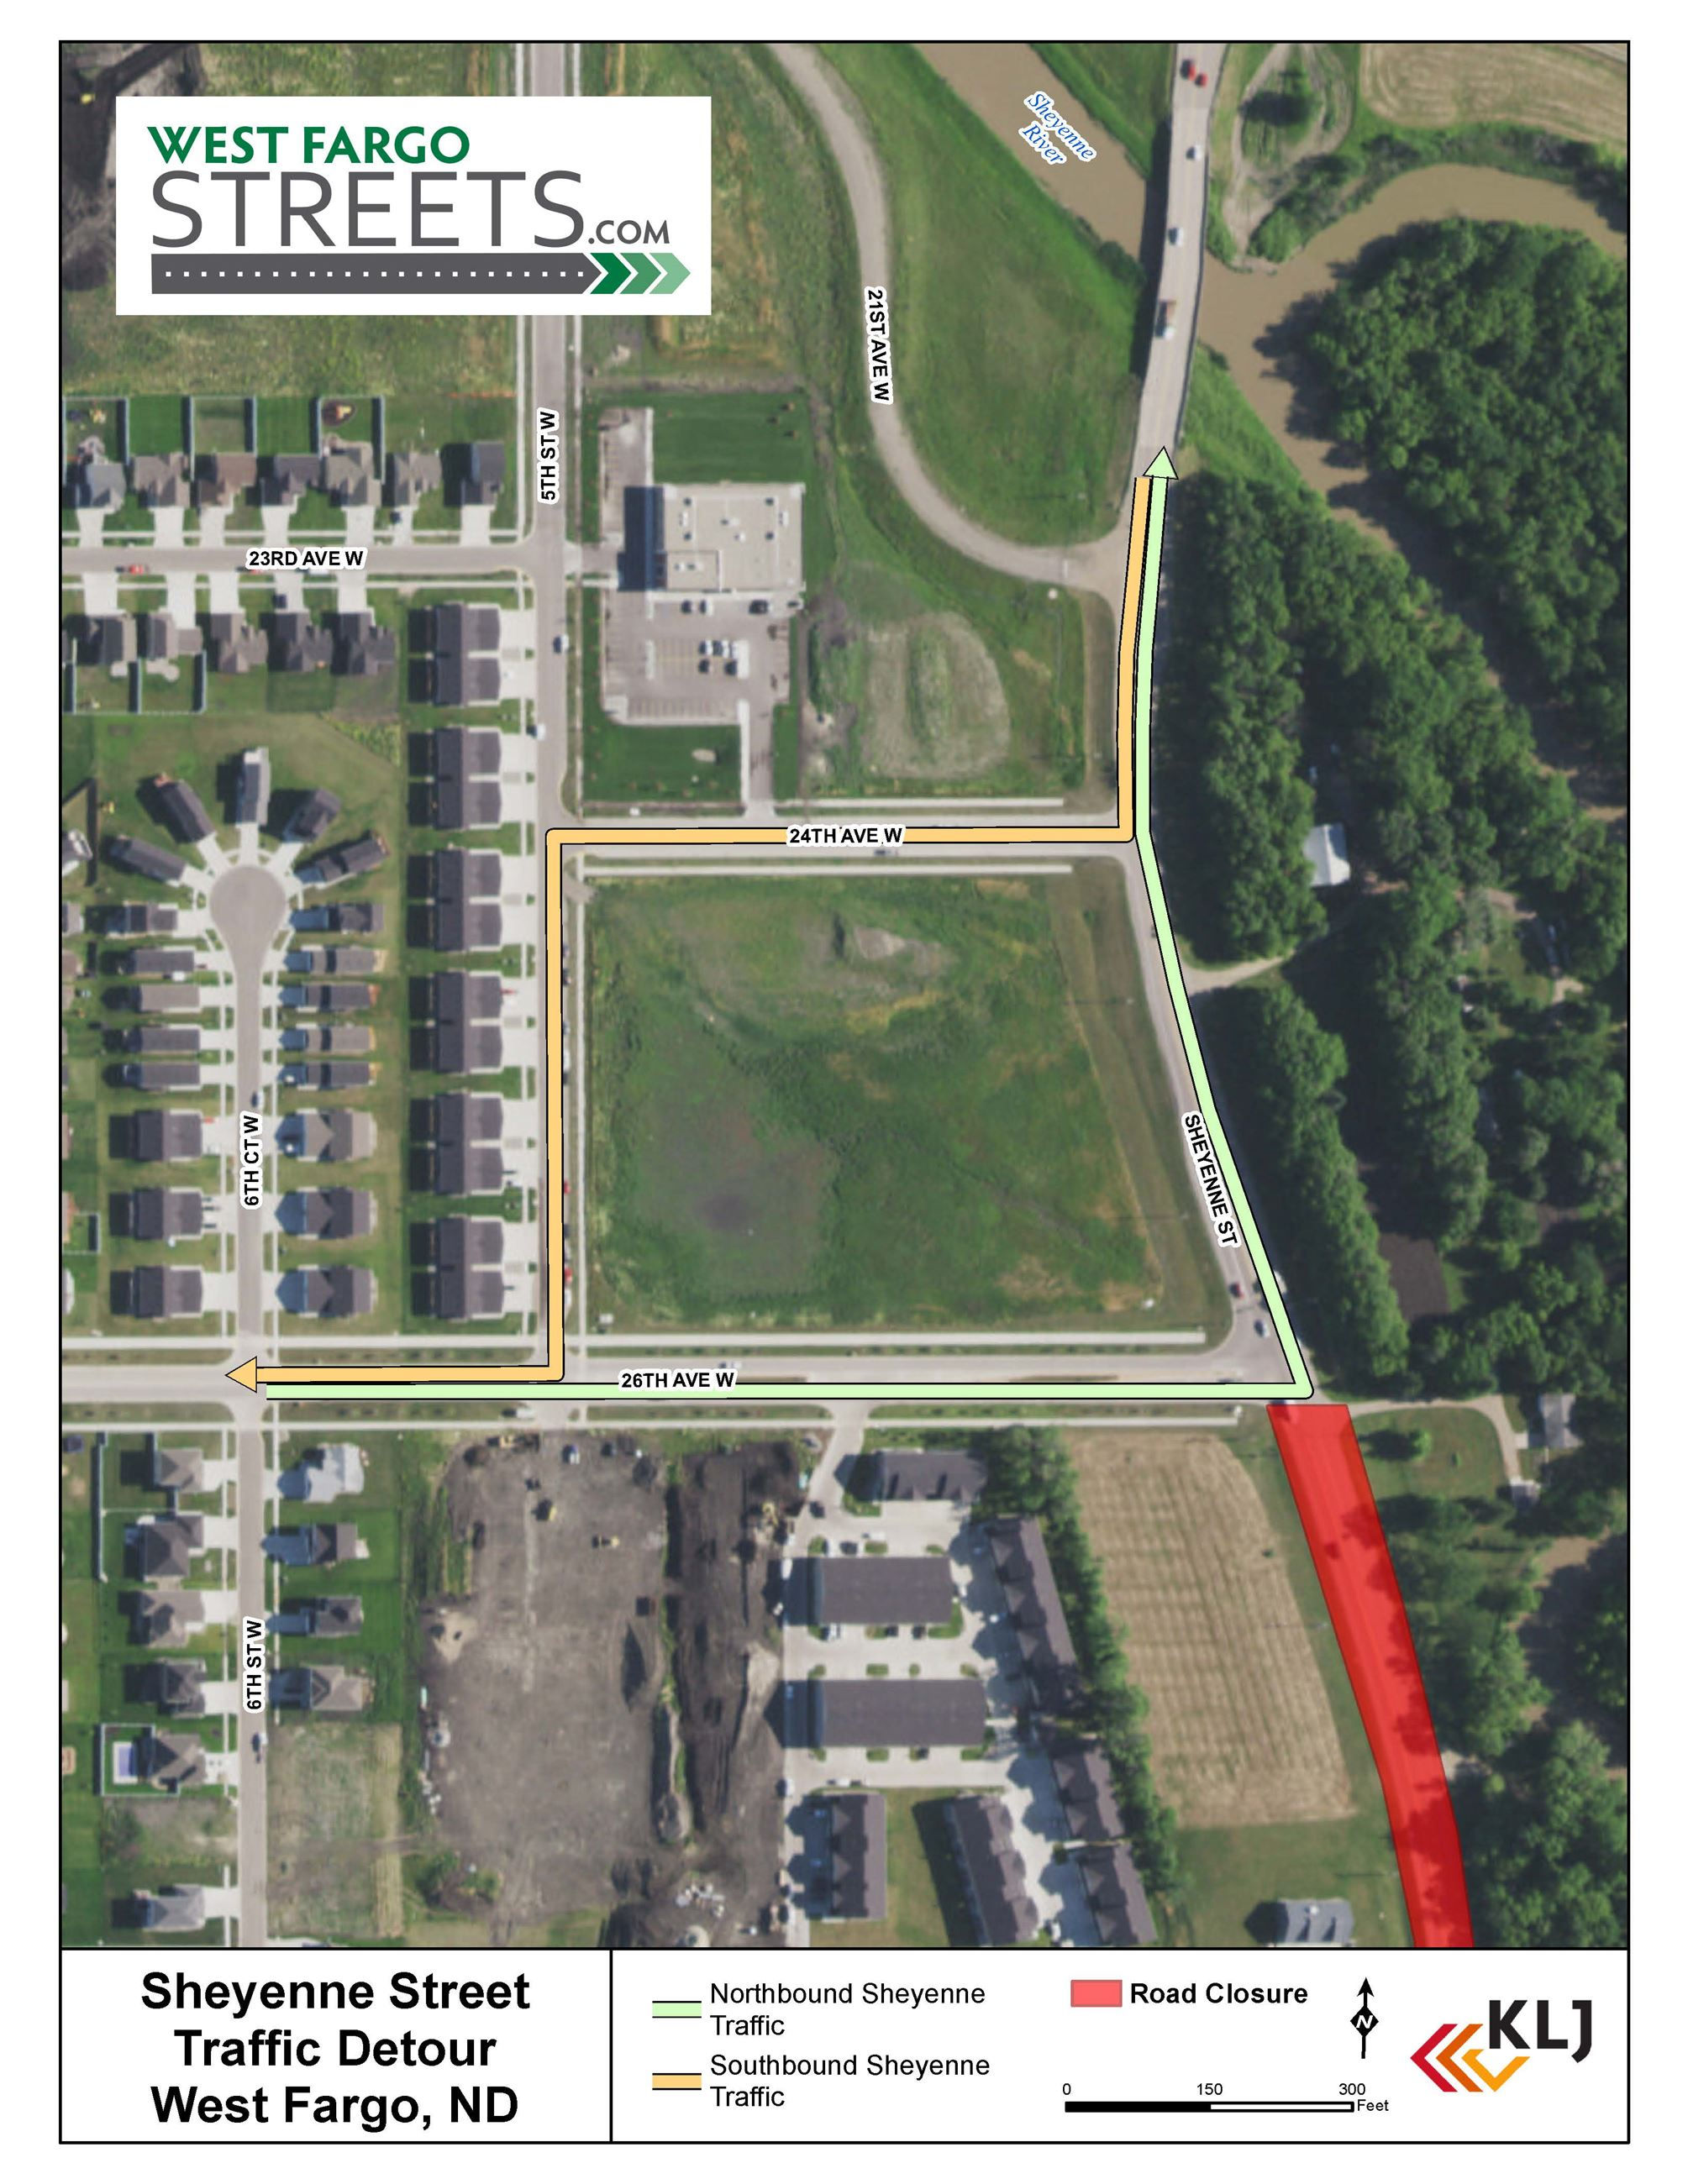 Aug. 21 Closure at 24th Ave W